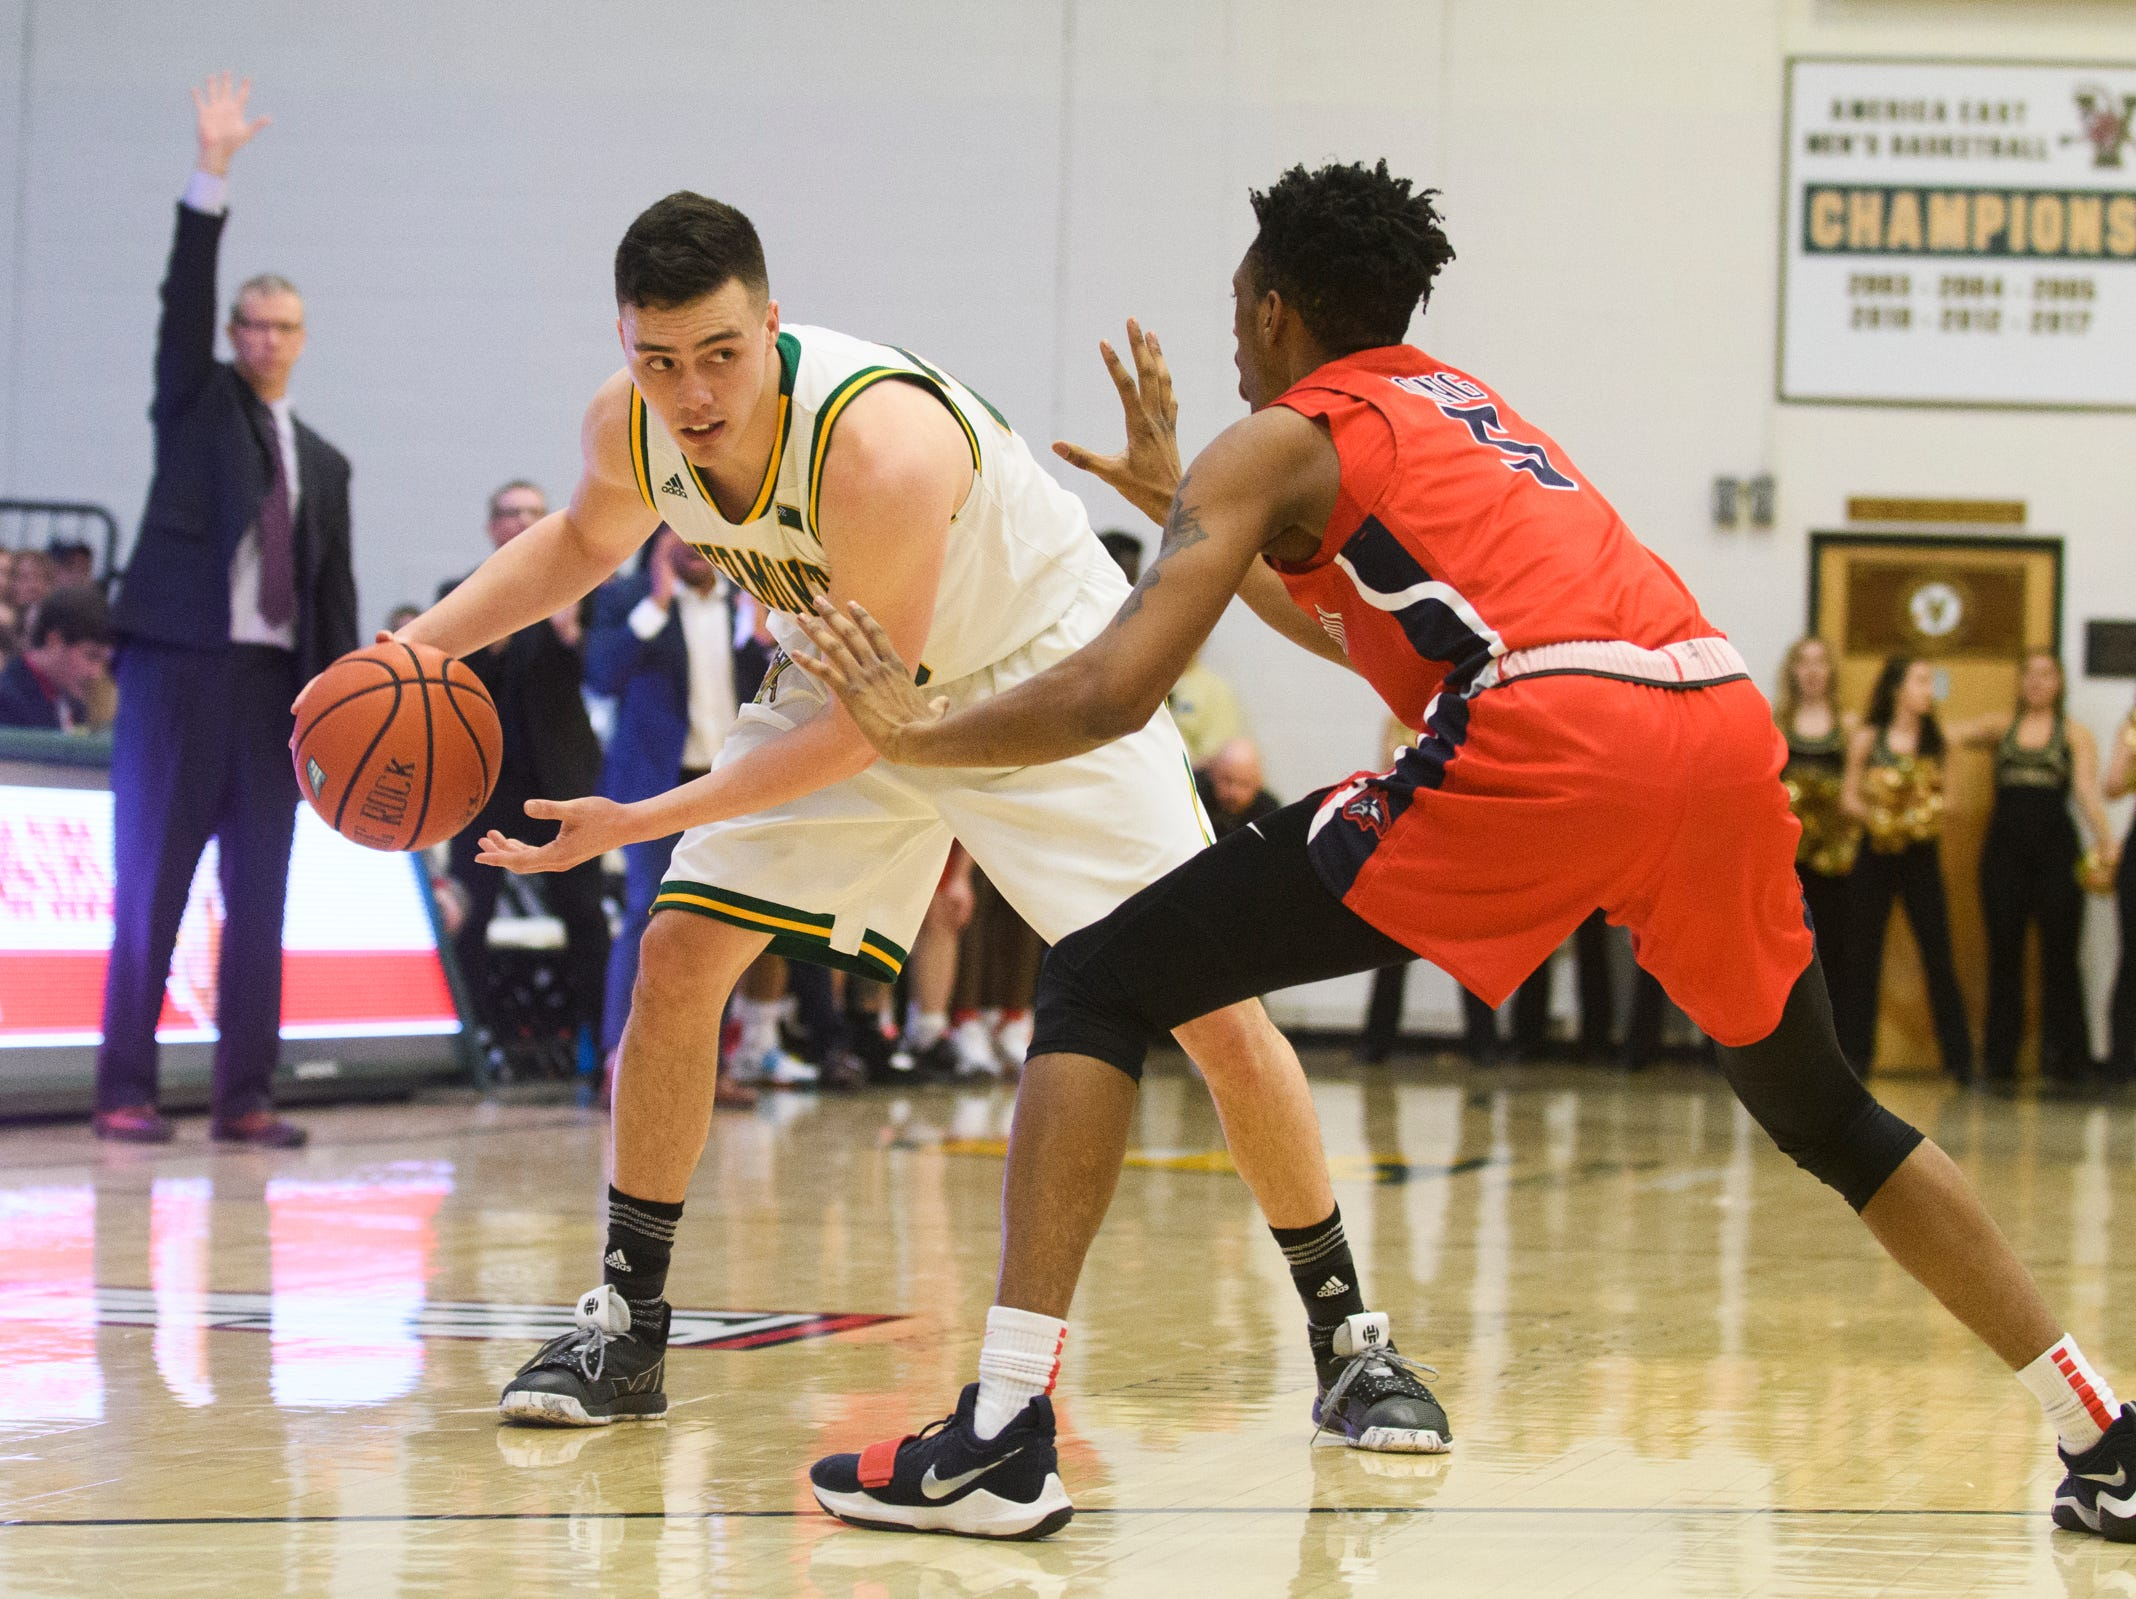 Vermont guard Ernie Duncan (20) is guarded by Stony Brook's Corry Long (5) during the men's basketball game between the Stony Brook Seawolves and the Vermont Catamounts at Patrick Gym on Saturday night March 2, 2019 in Burlington, Vermont.